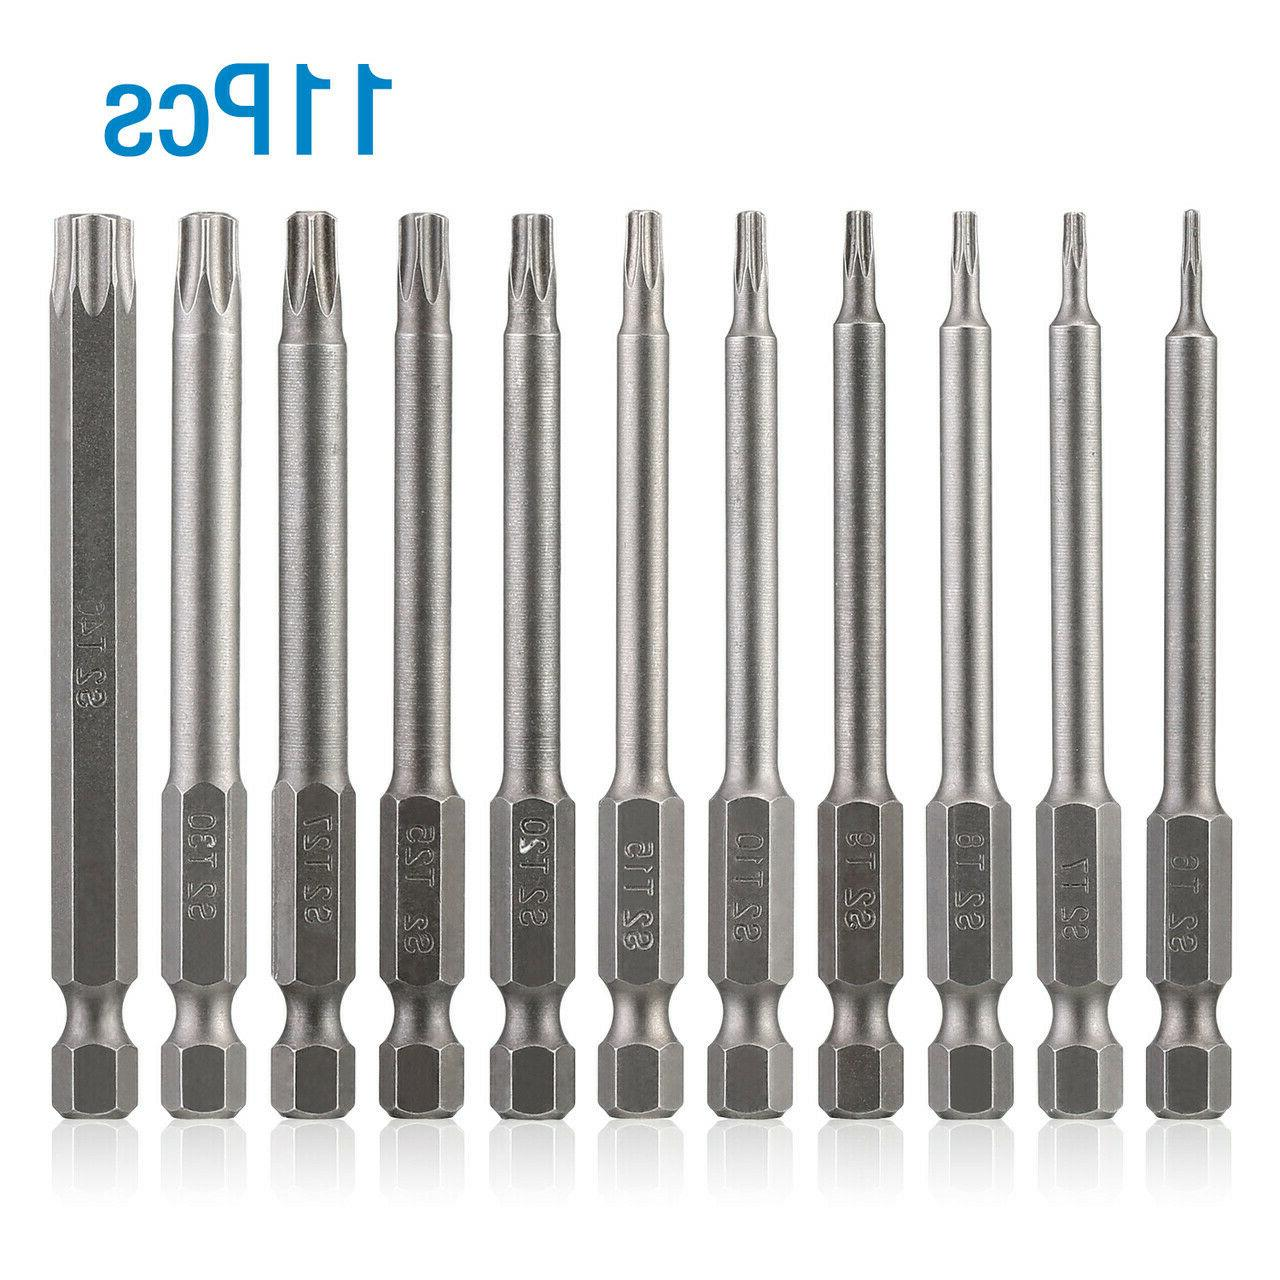 11pc Torx Bit Set Quick driver Proof